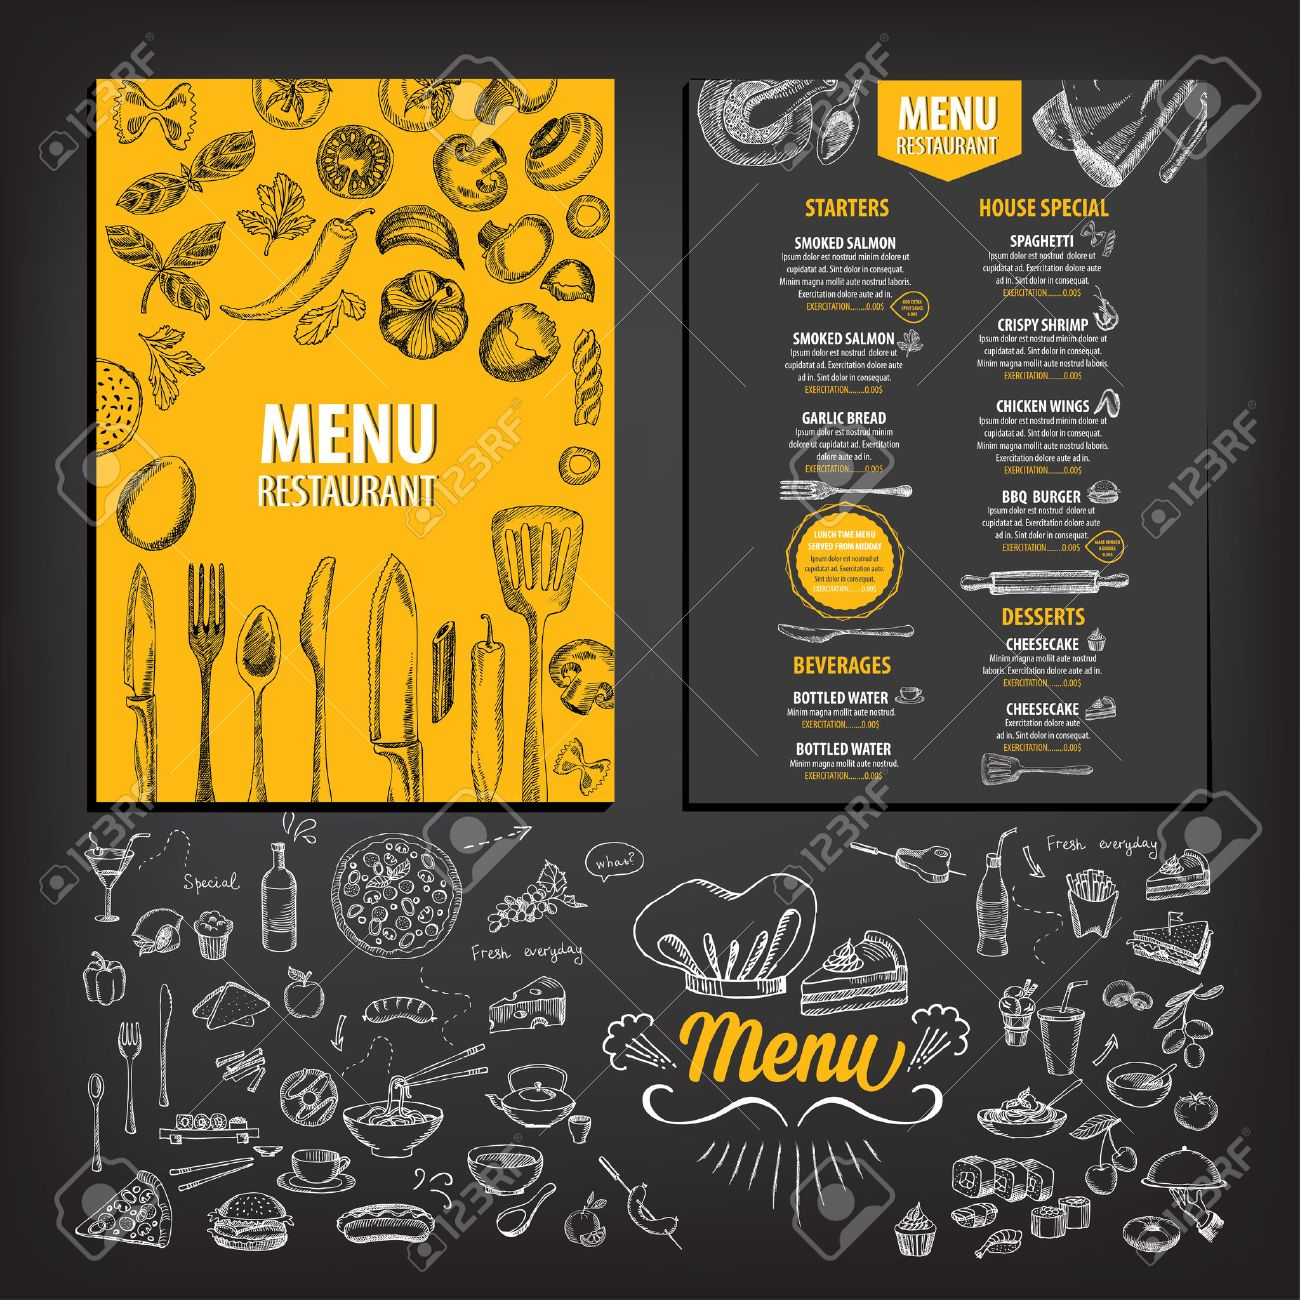 For restaurant pictures graphics illustrations clipart photos - Vector Restaurant Brochure Menu Design Vector Cafe Template With Hand Drawn Graphic